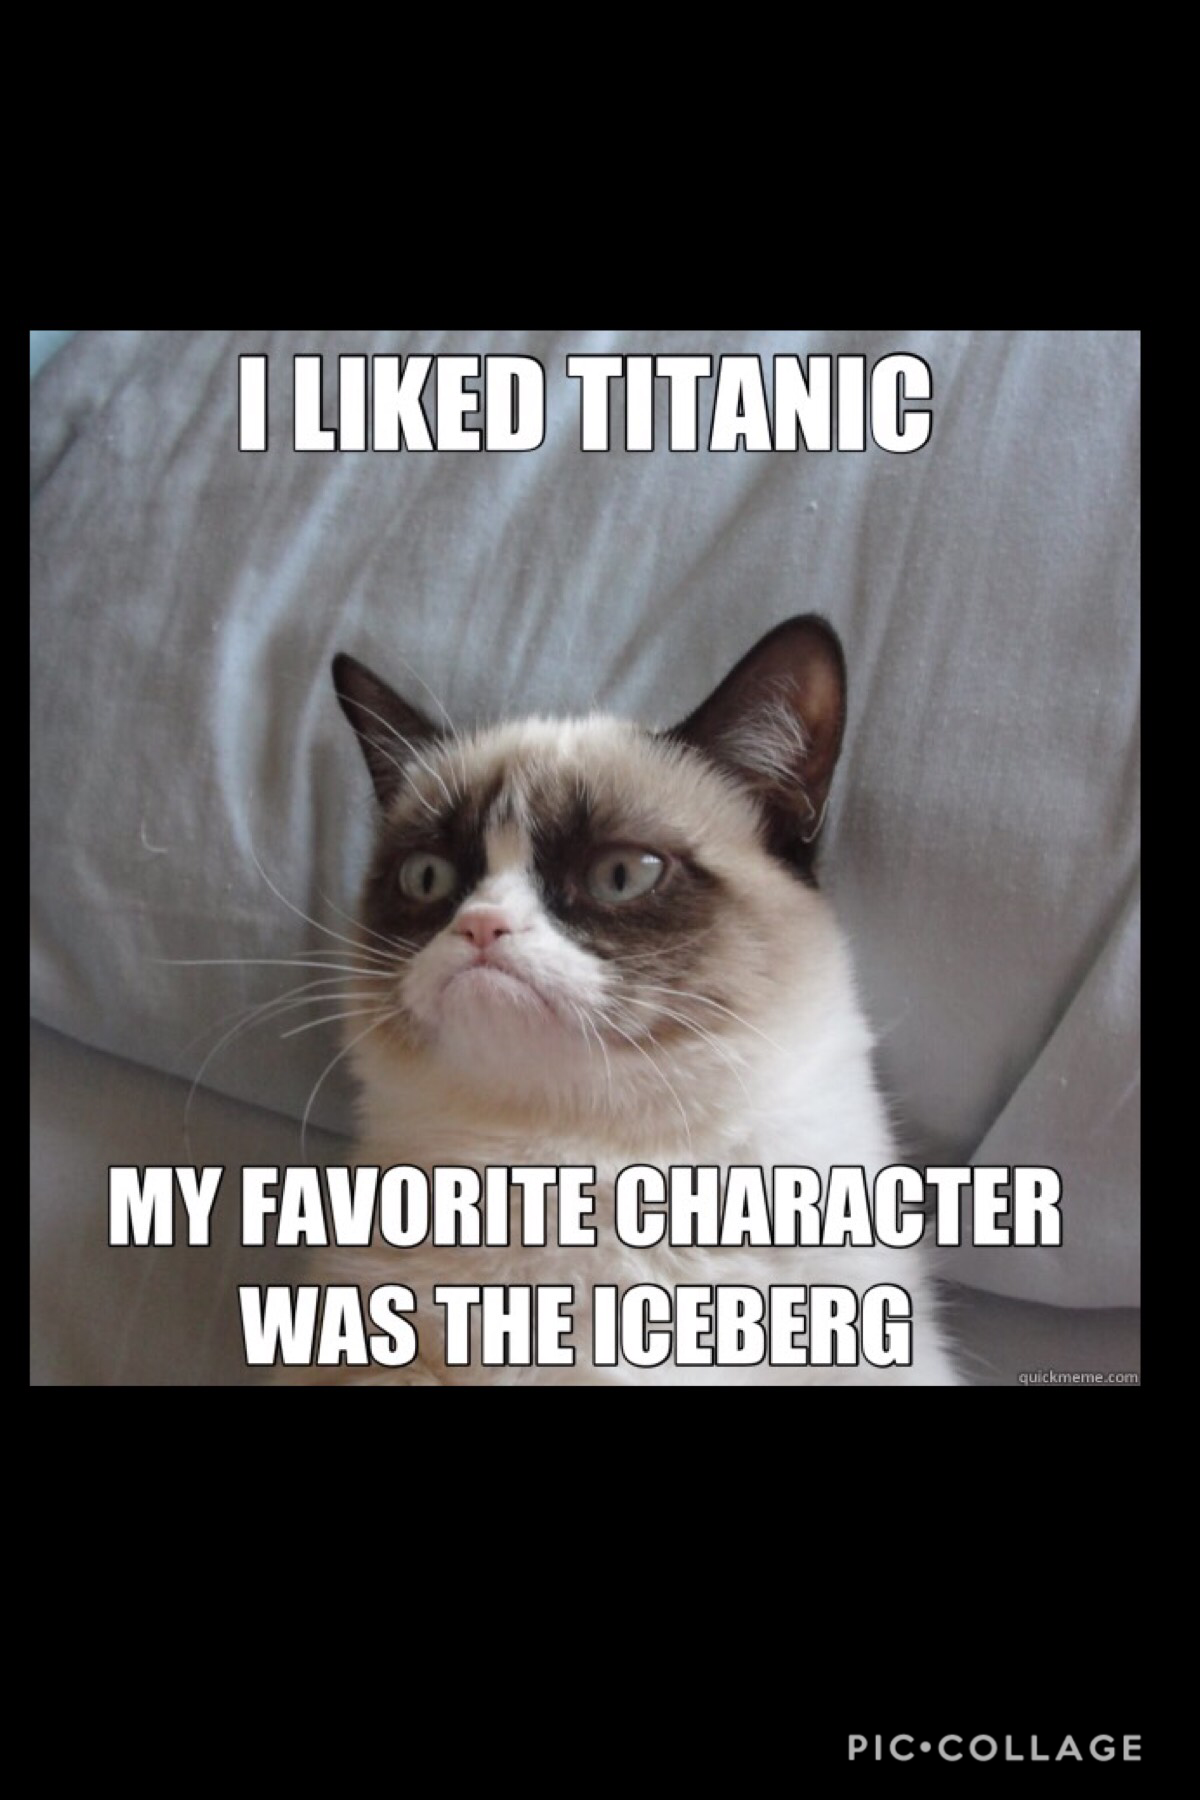 My favouite character was the iceberg too.